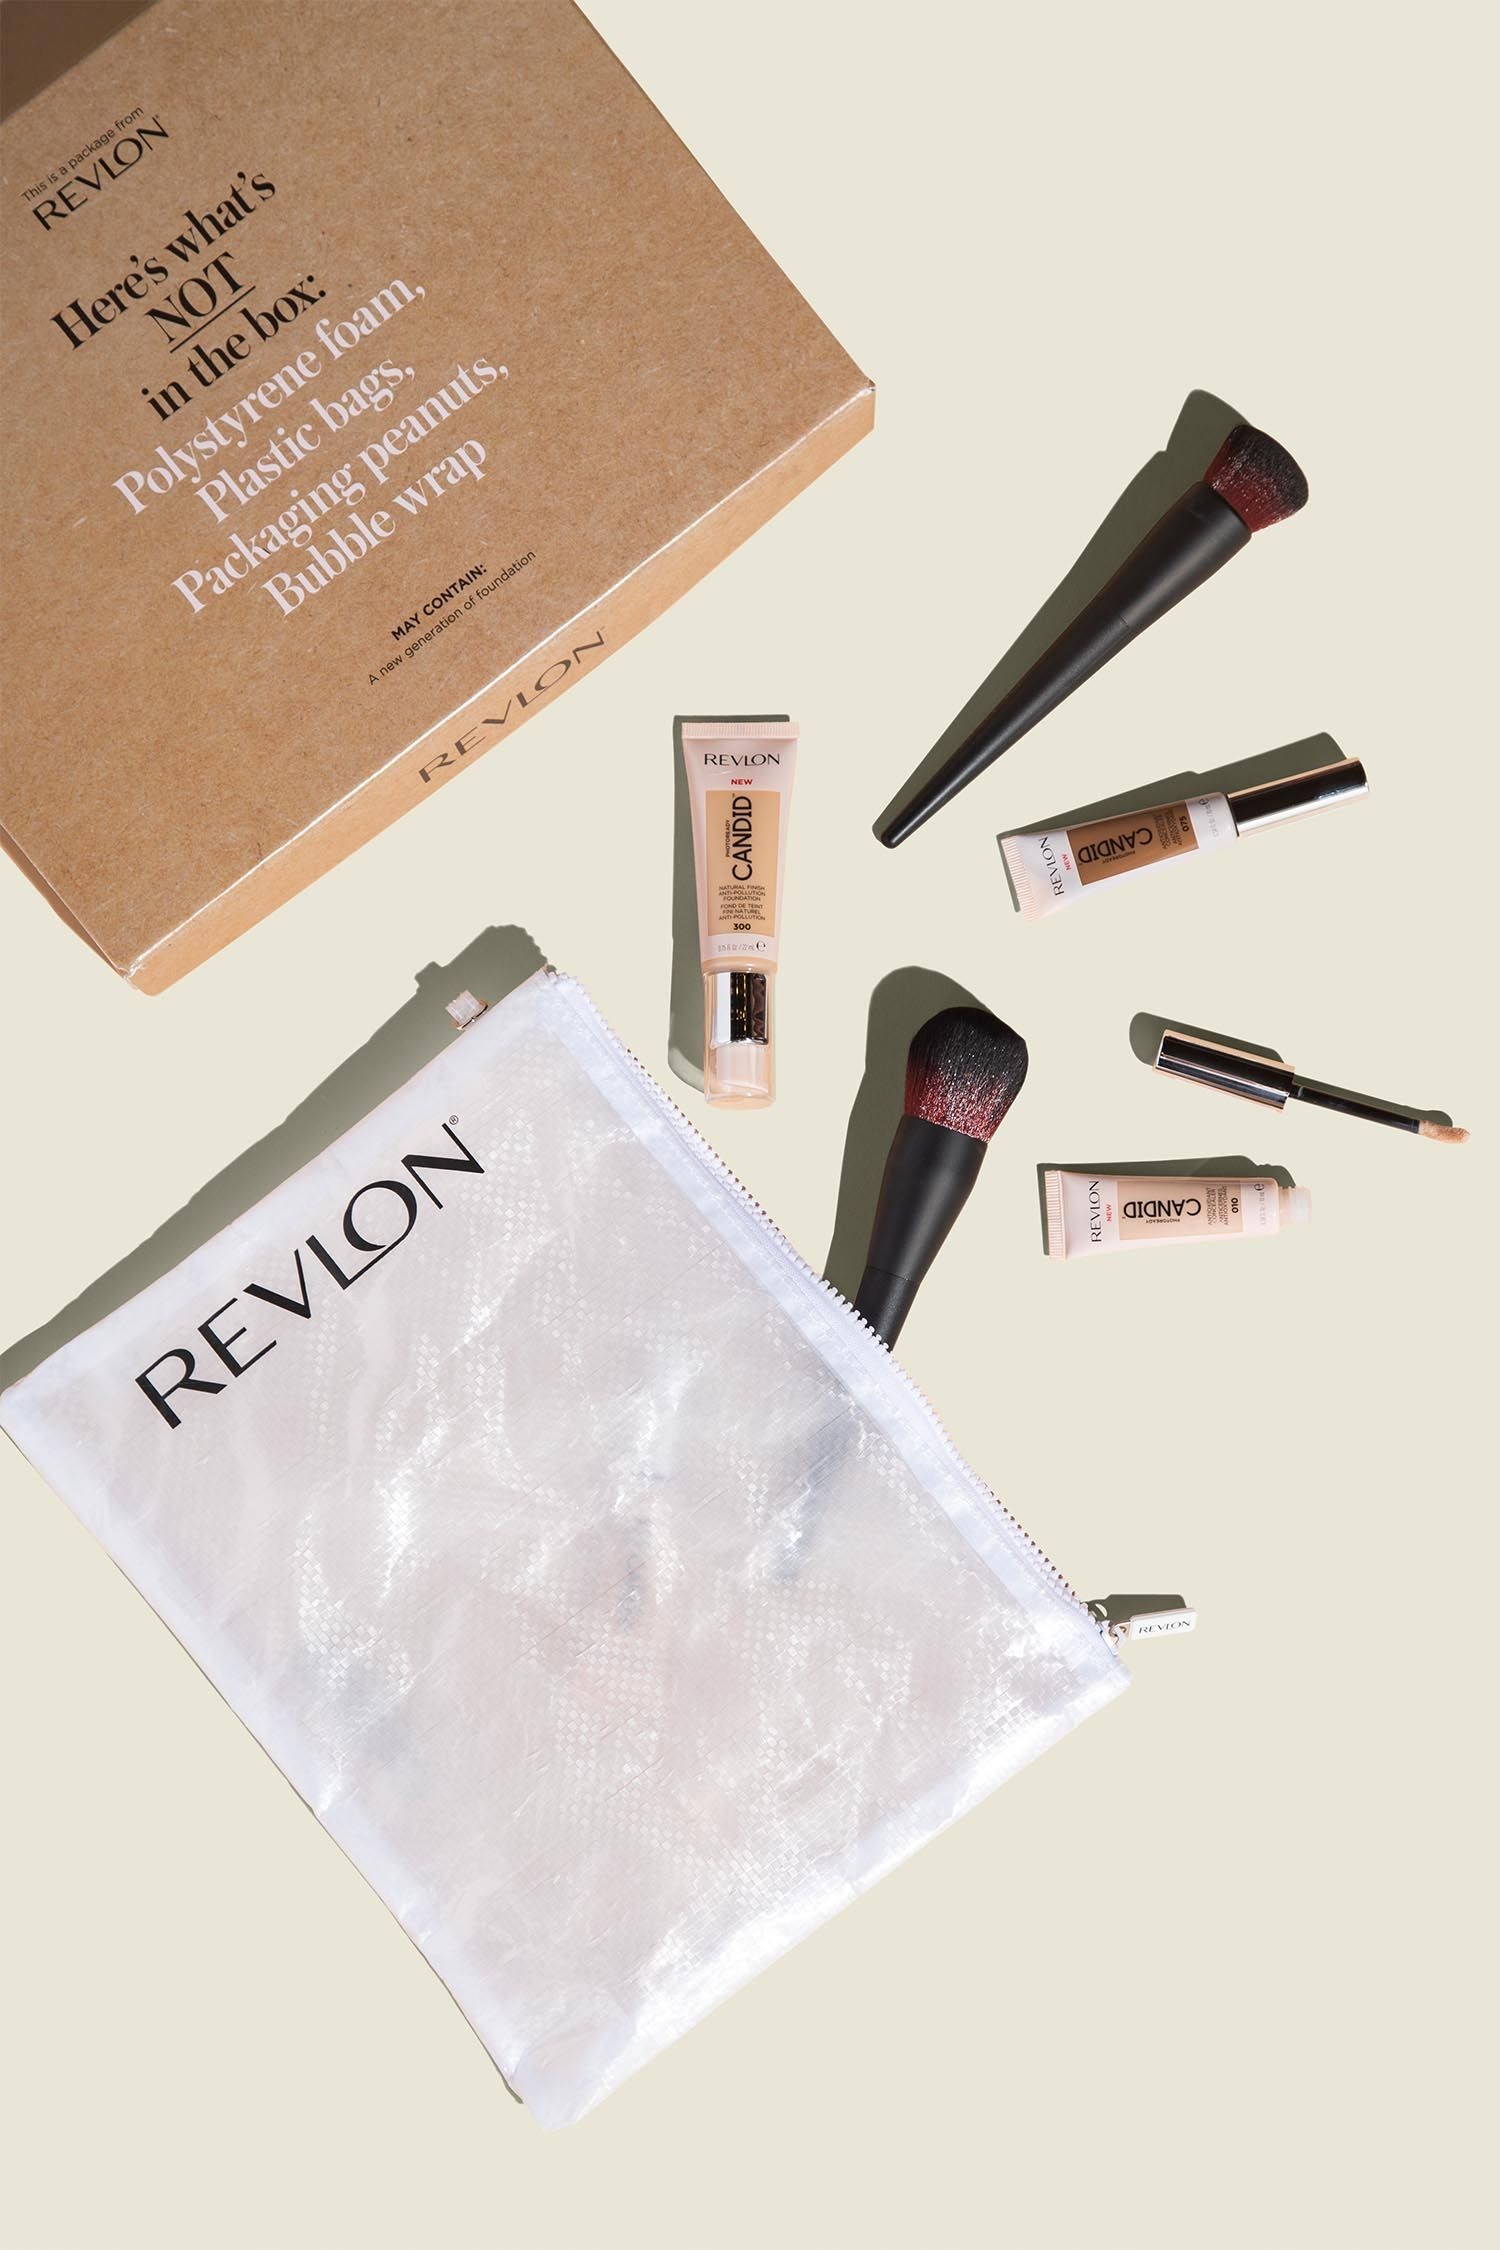 Custom packaging with flat zip pouch and beauty products